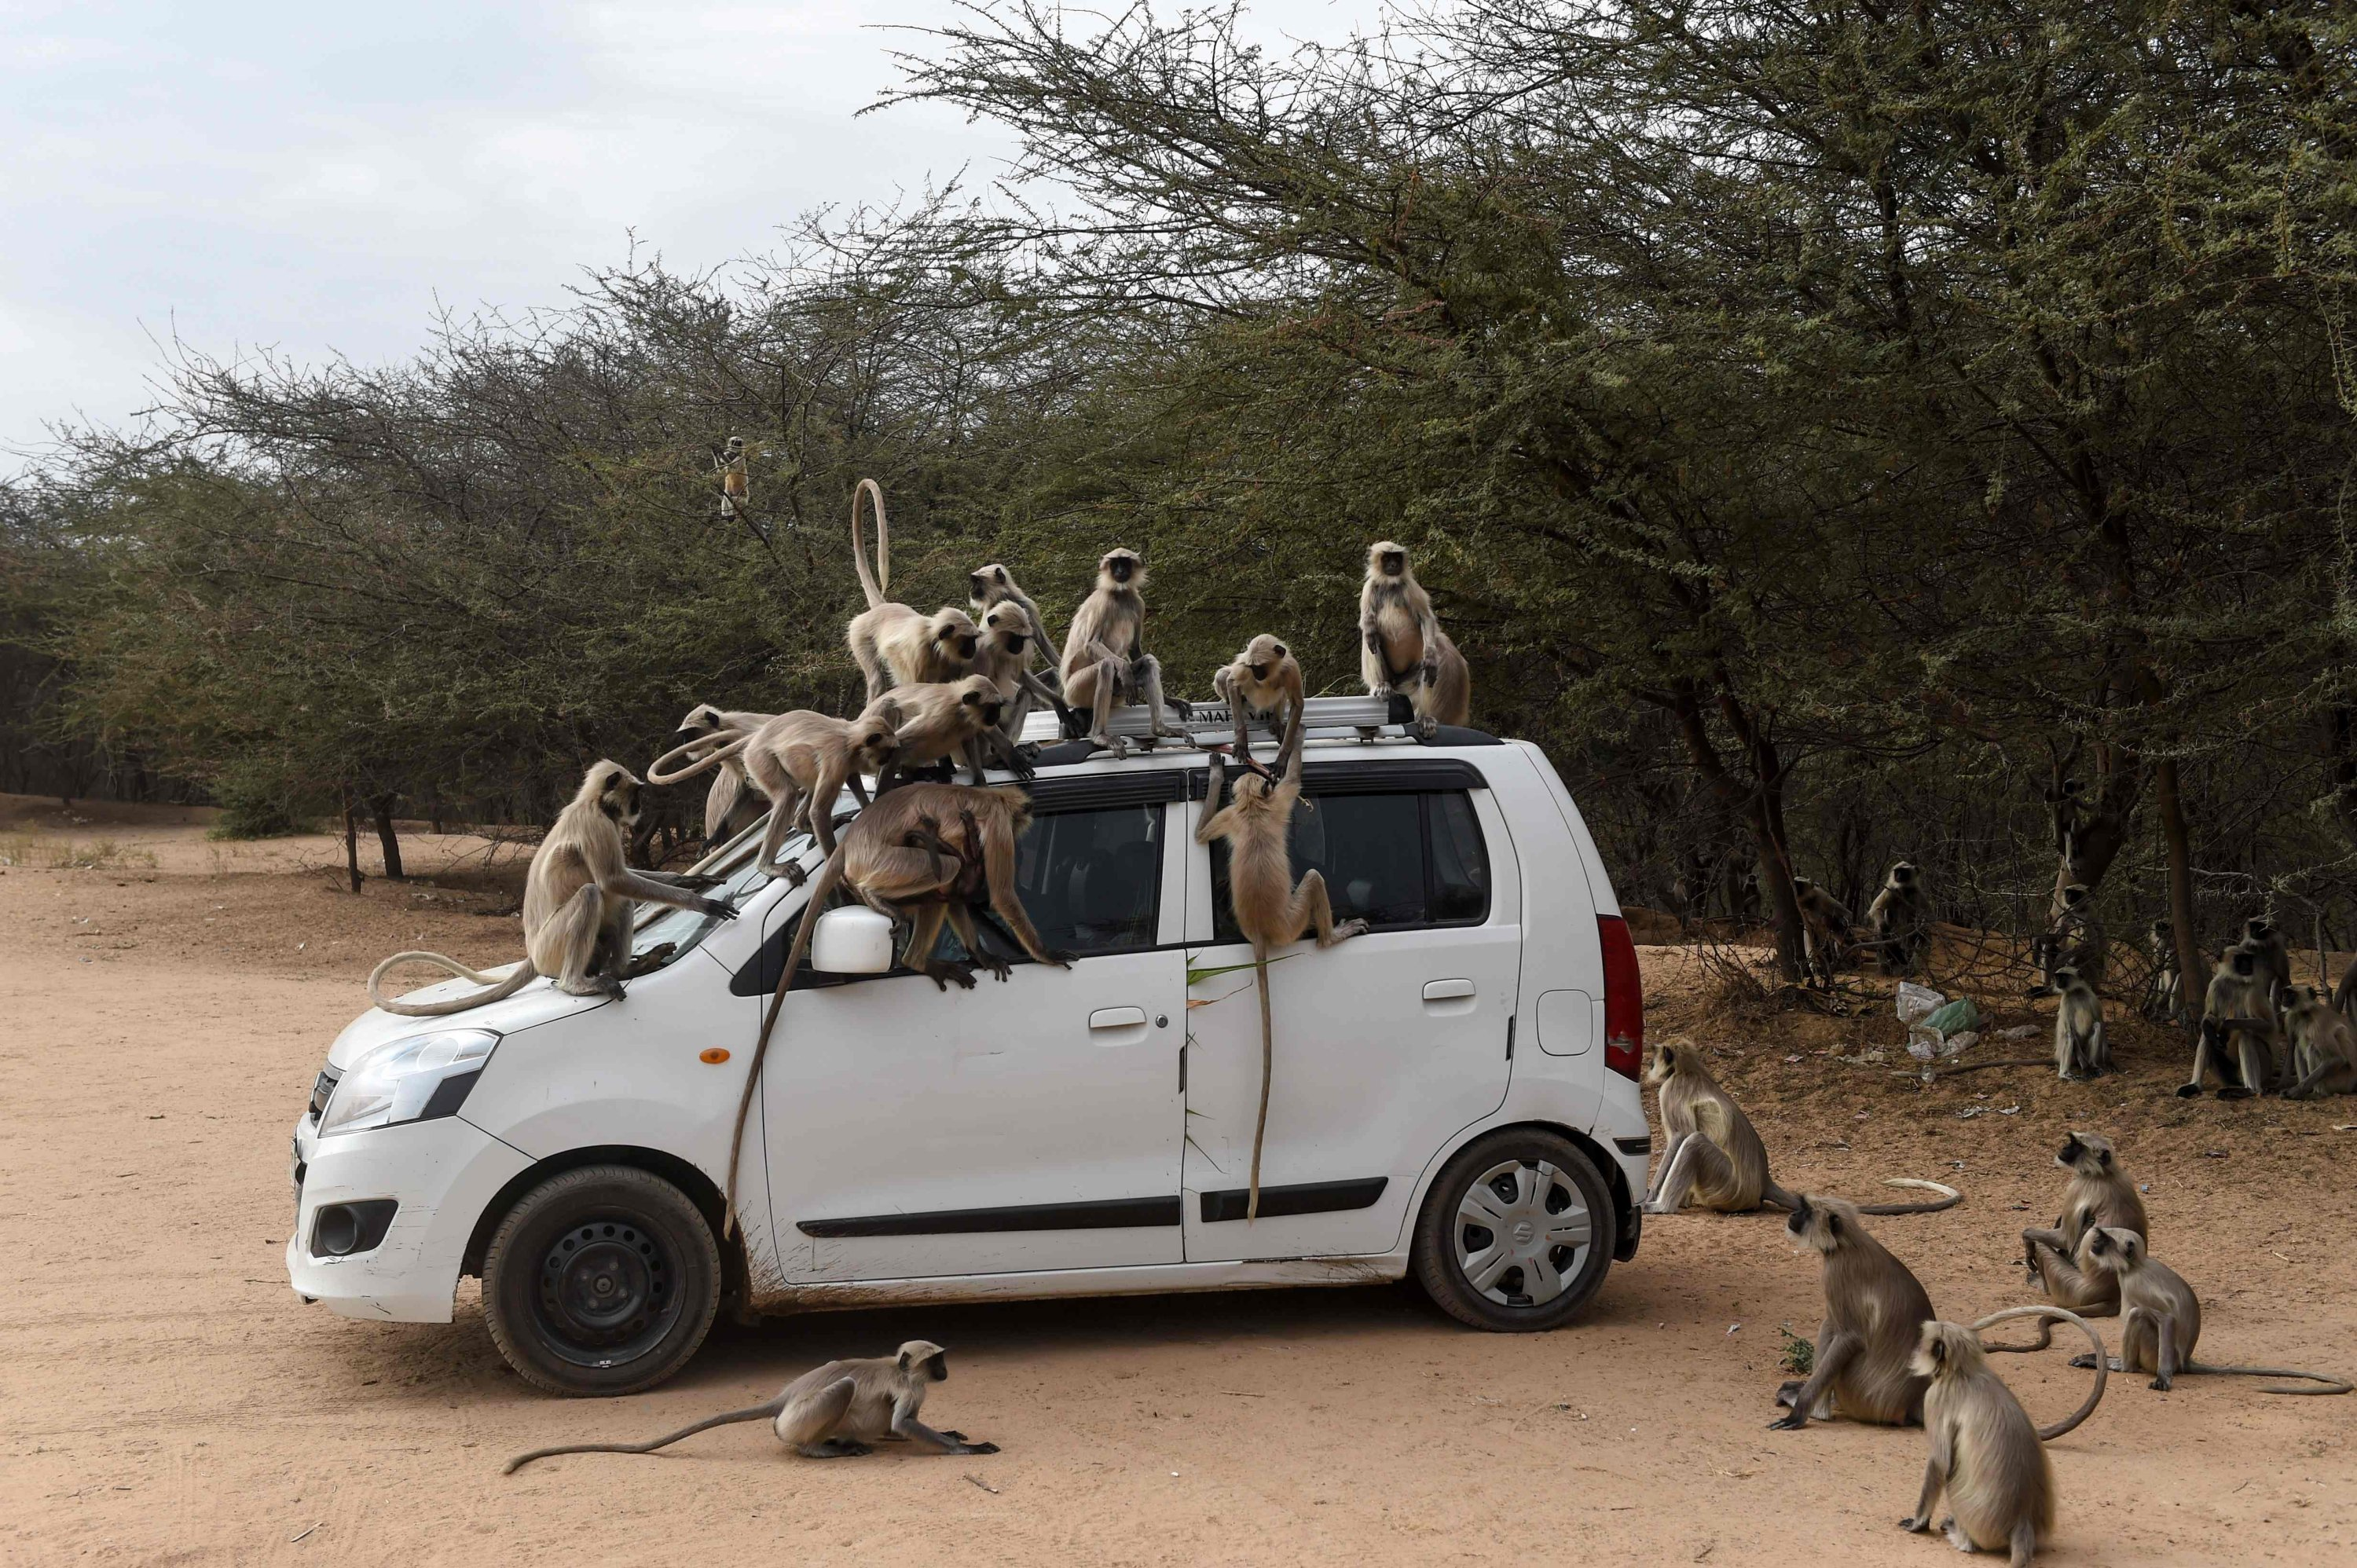 Monkeys climb on a car as they are being fed with potatoes by a resident at Ode village, near Ahmedabad, March 25, 2020. (AFP Photo)